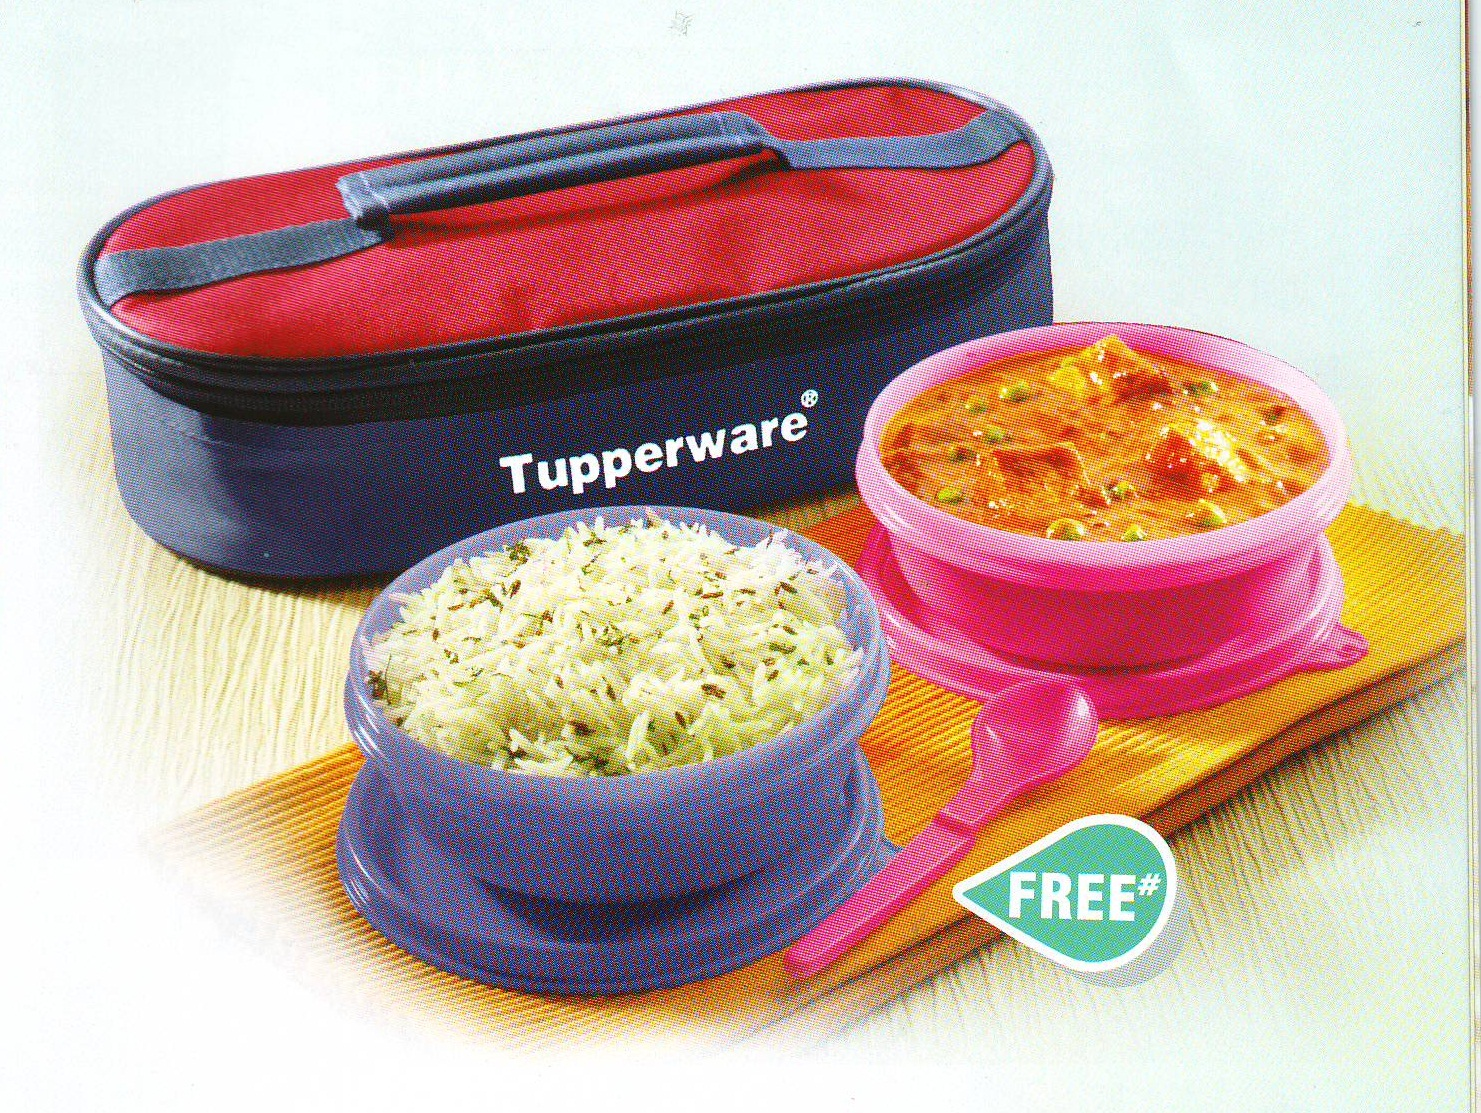 Tupperware Bangalore Green India Fact